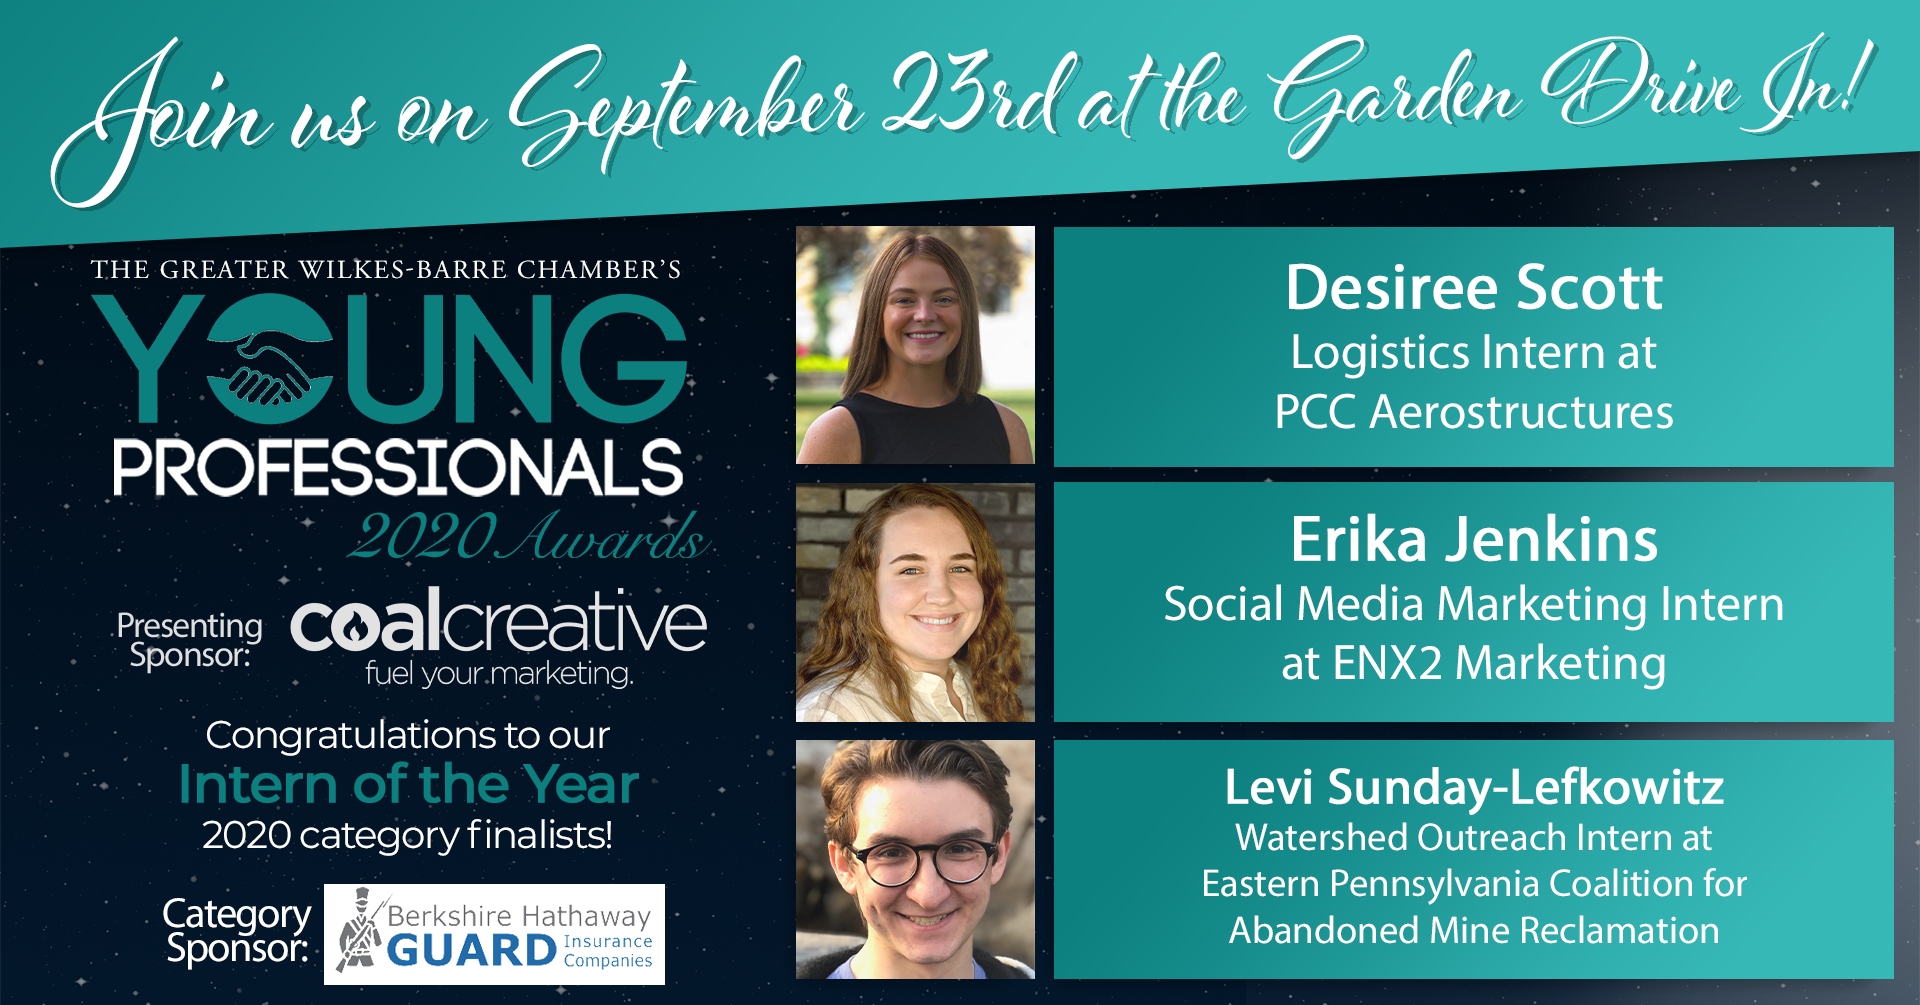 Meet the 2020 Young Professionals Category Finalists for Intern of the Year!